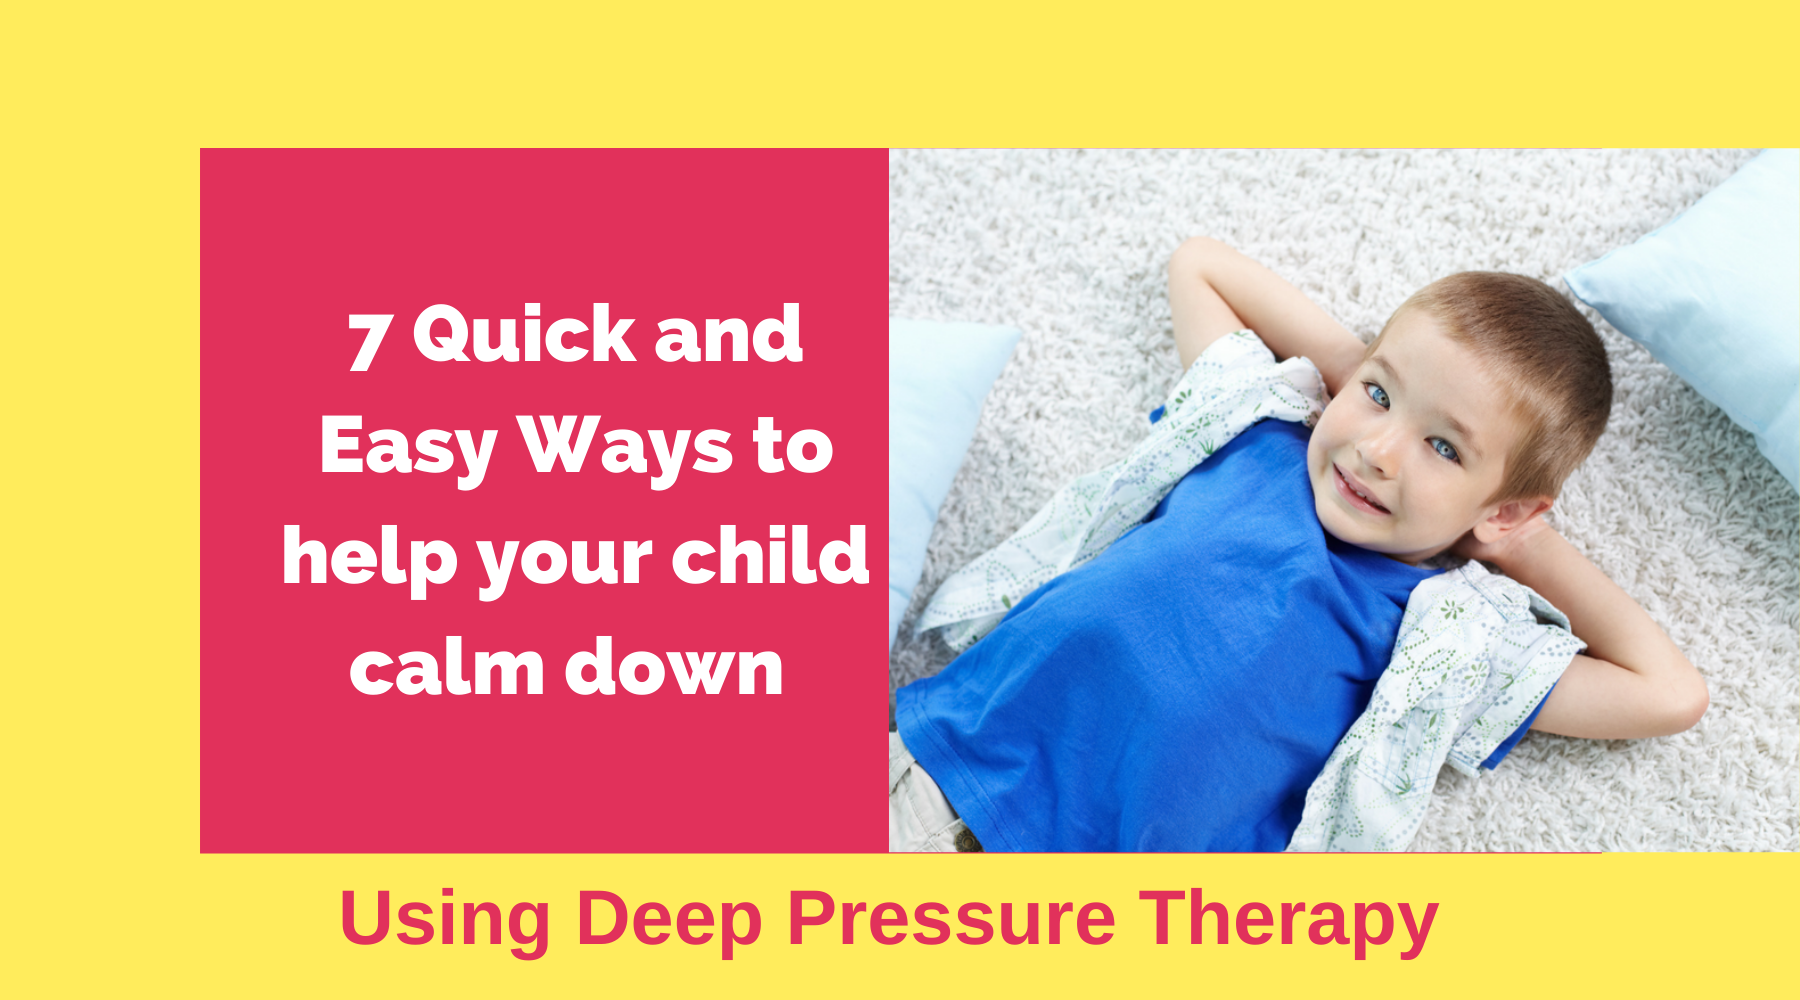 7 Quick and Easy Ways to Help your child calm down using Deep Pressure Therapy - Special Needs Australia